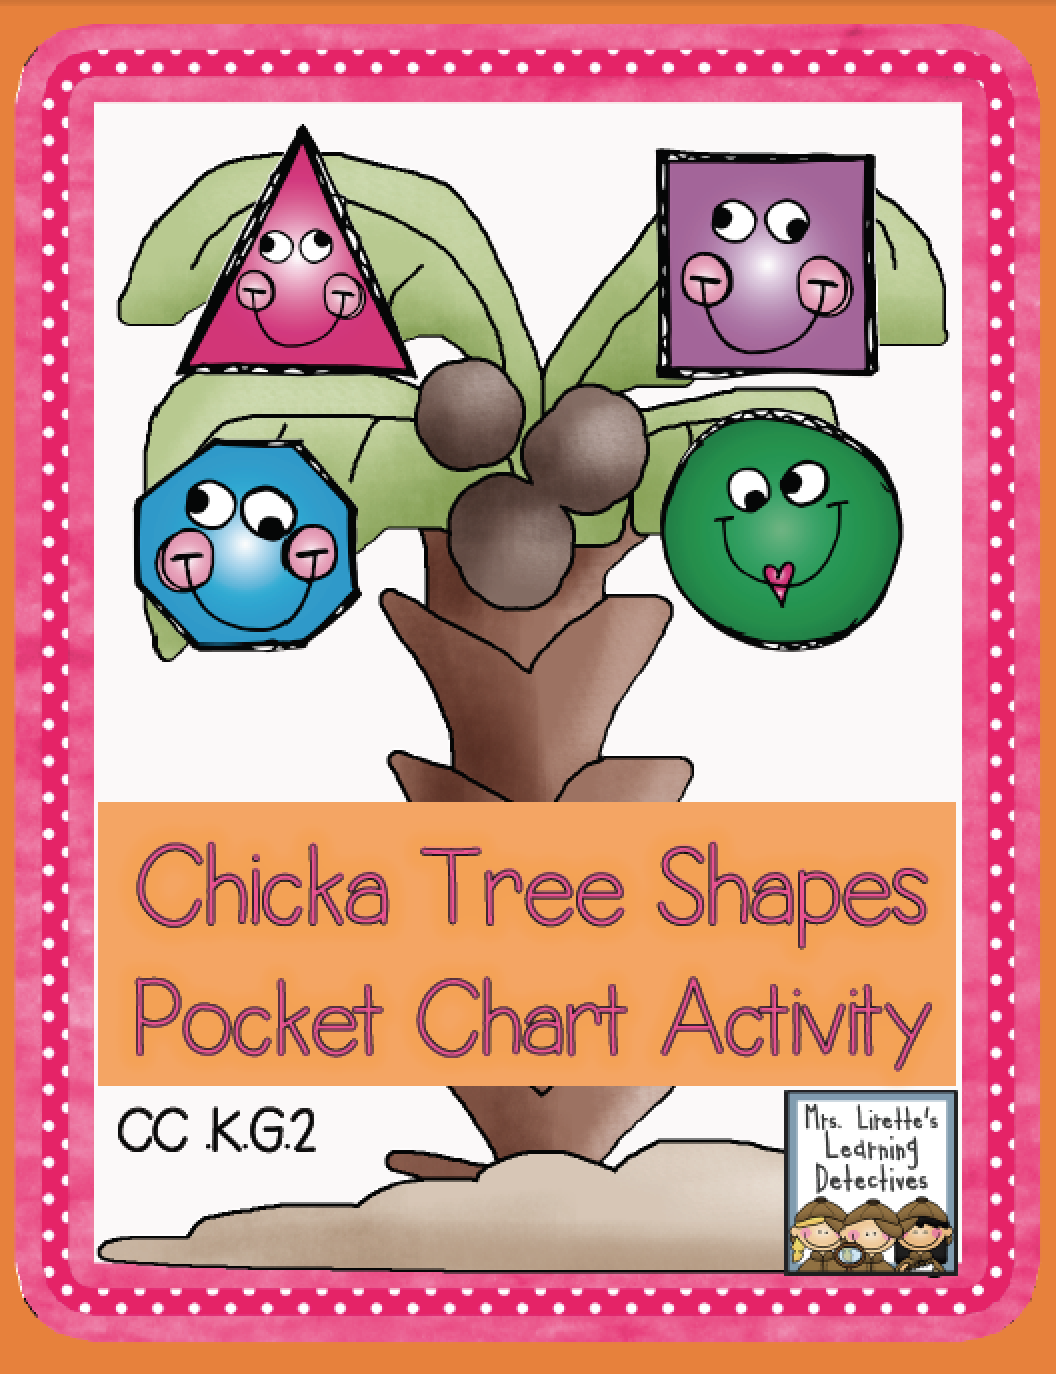 Chicka Tree Shapes Free Pocket Chart Activity